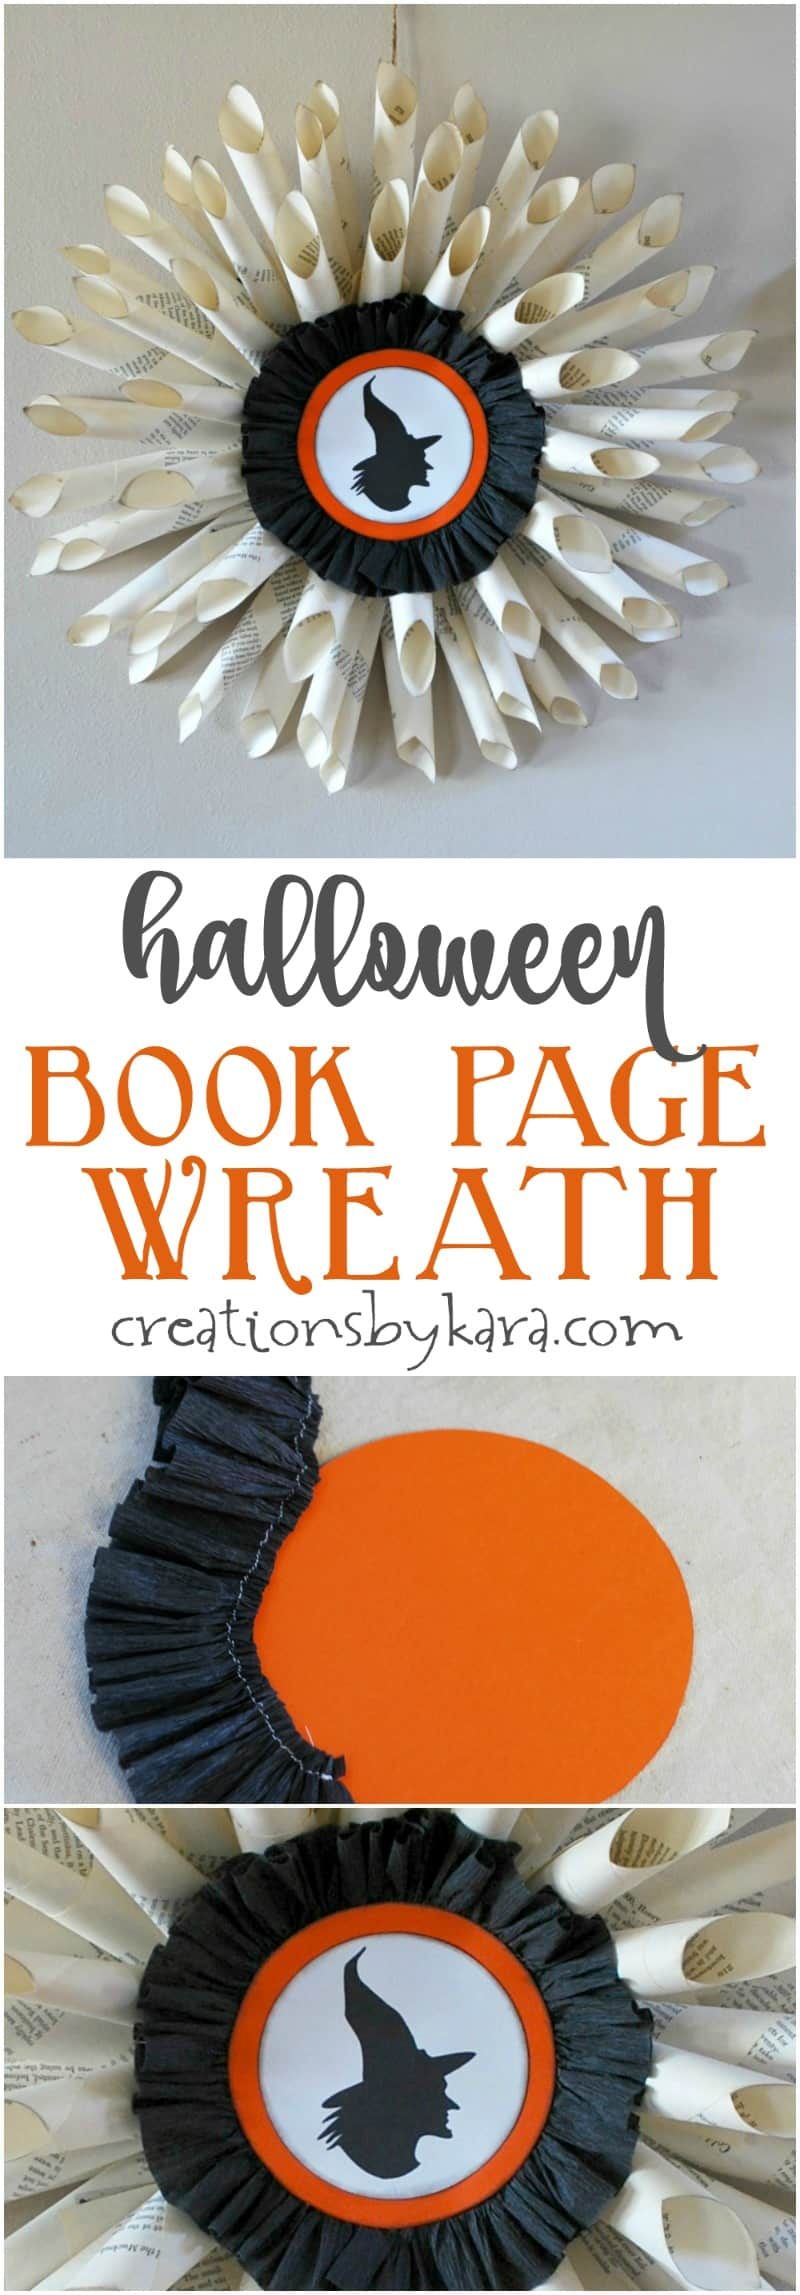 Halloween book page wreath tutorial | Halloween wreath instructions | easy Halloween wreath made with book pages